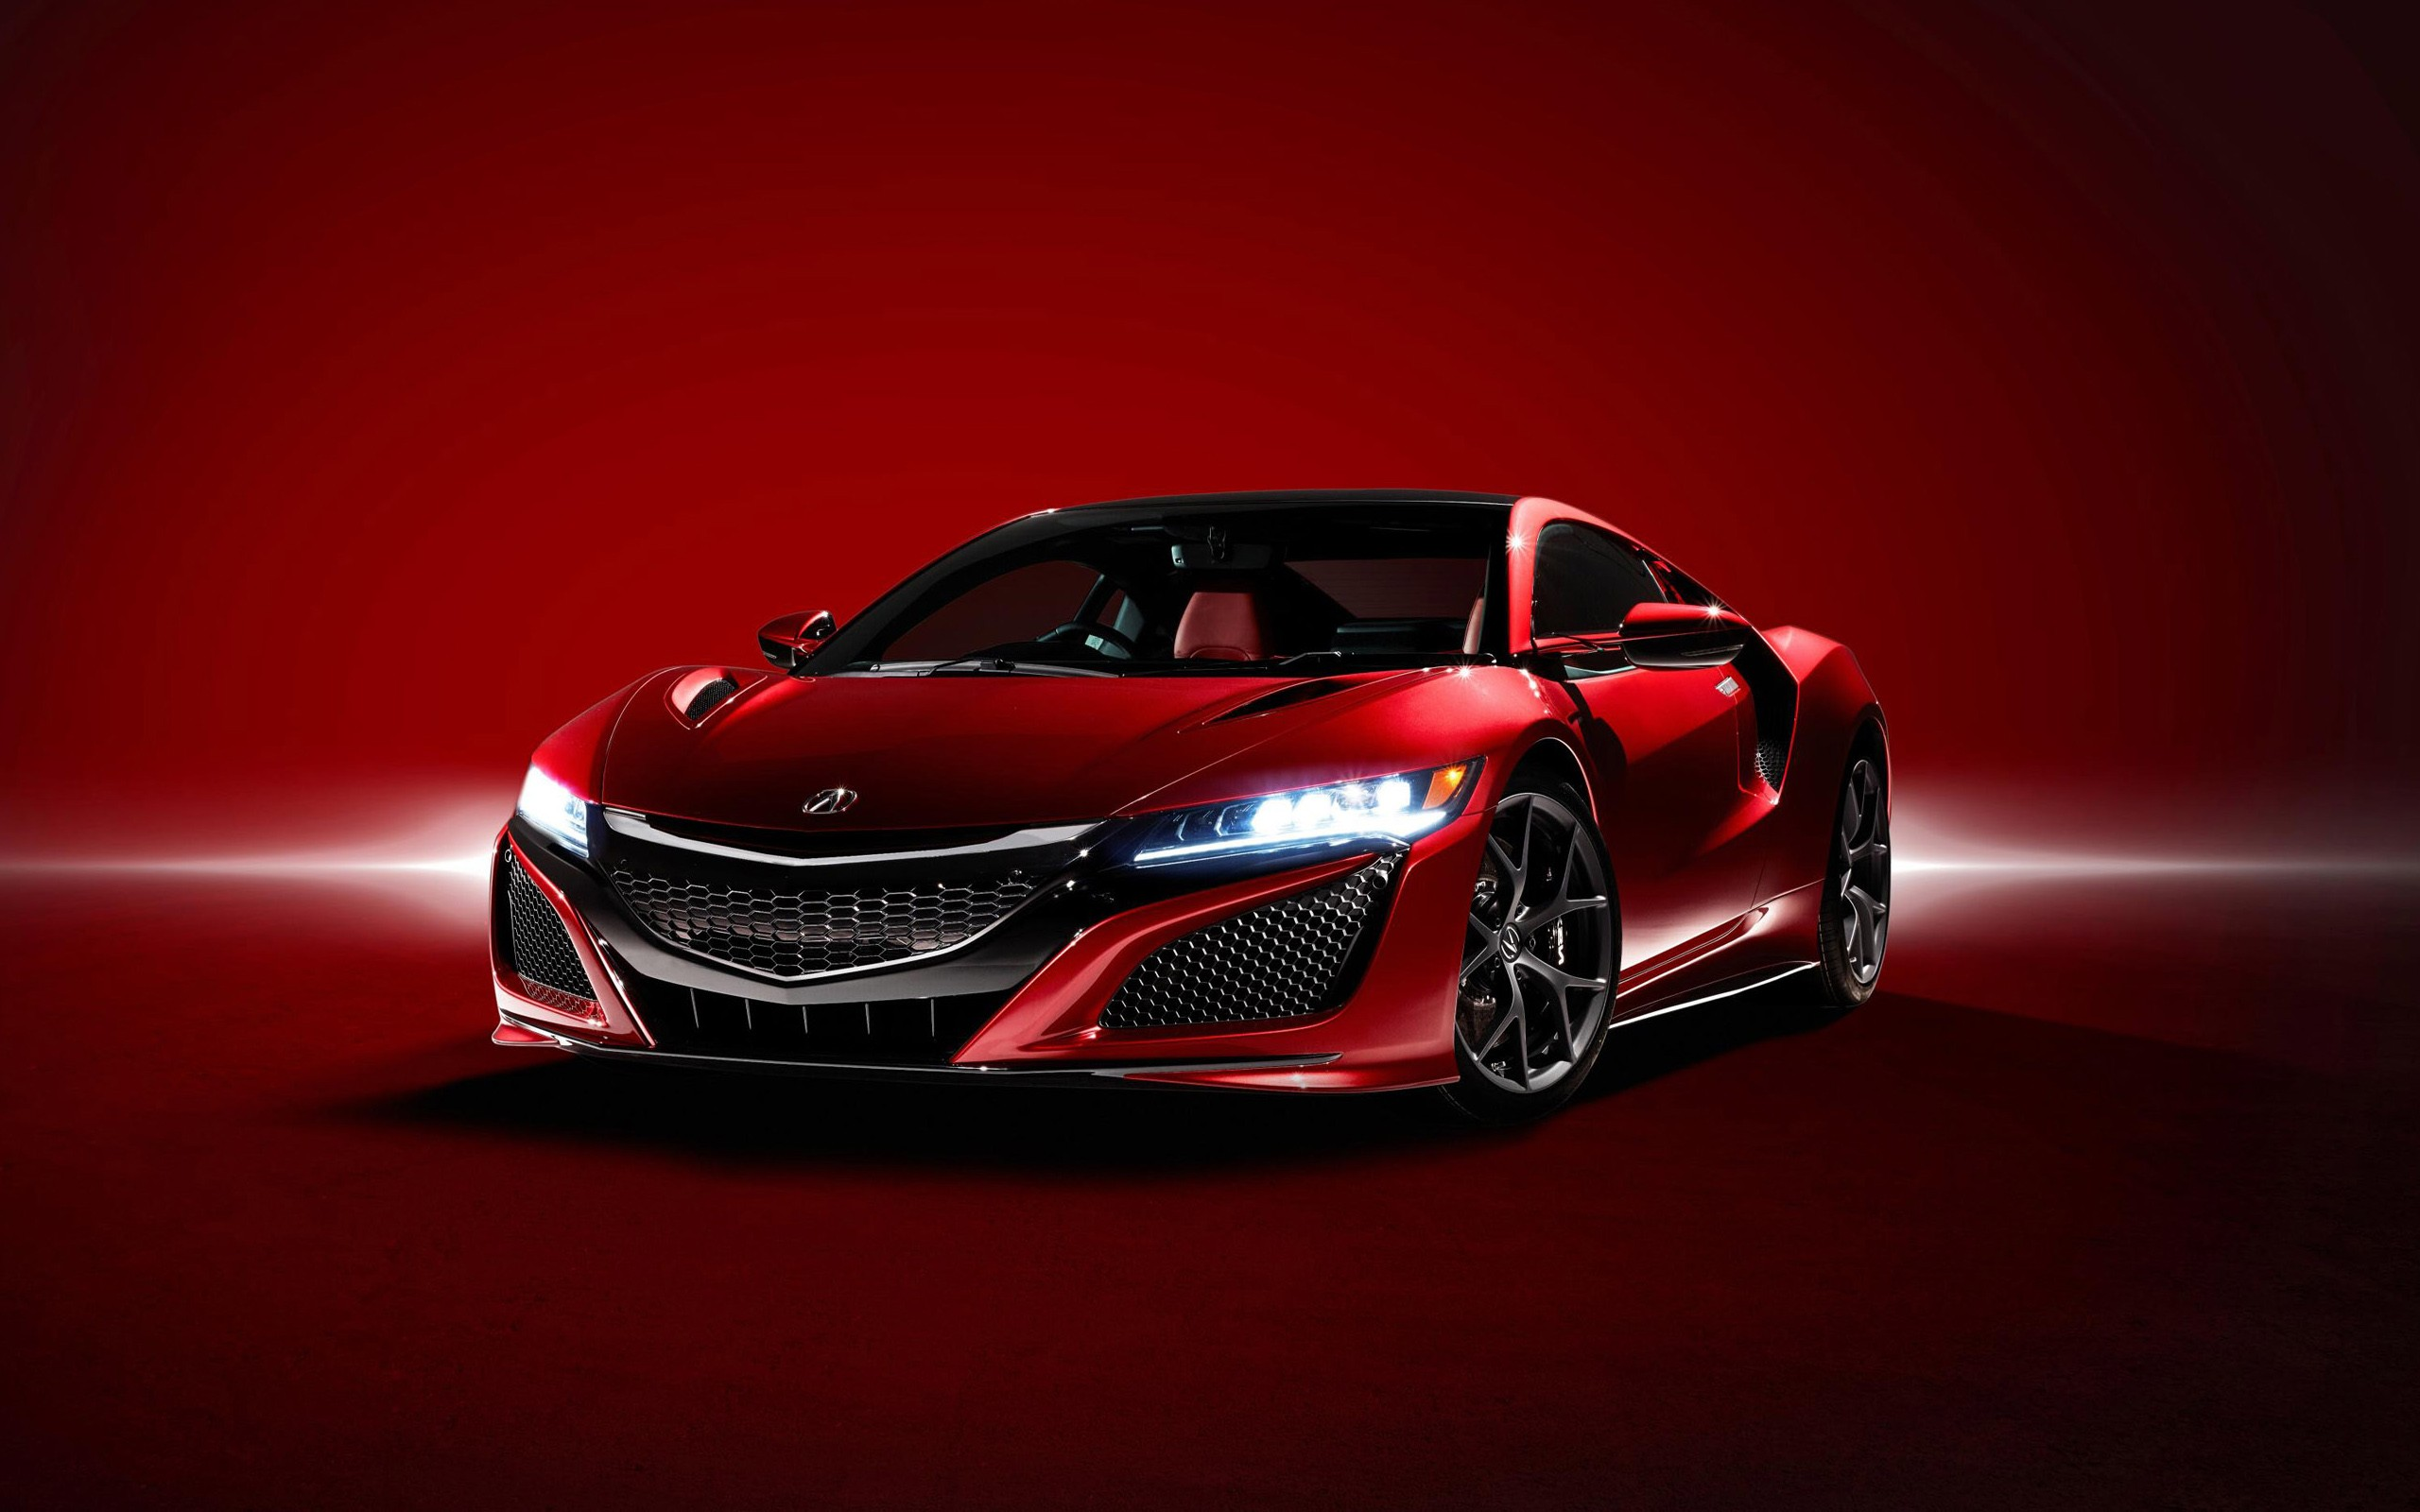 Hd Car Wallpapers For Mobile 1080x1920 Acura Nsx Car Hd Cars 4k Wallpapers Images Backgrounds